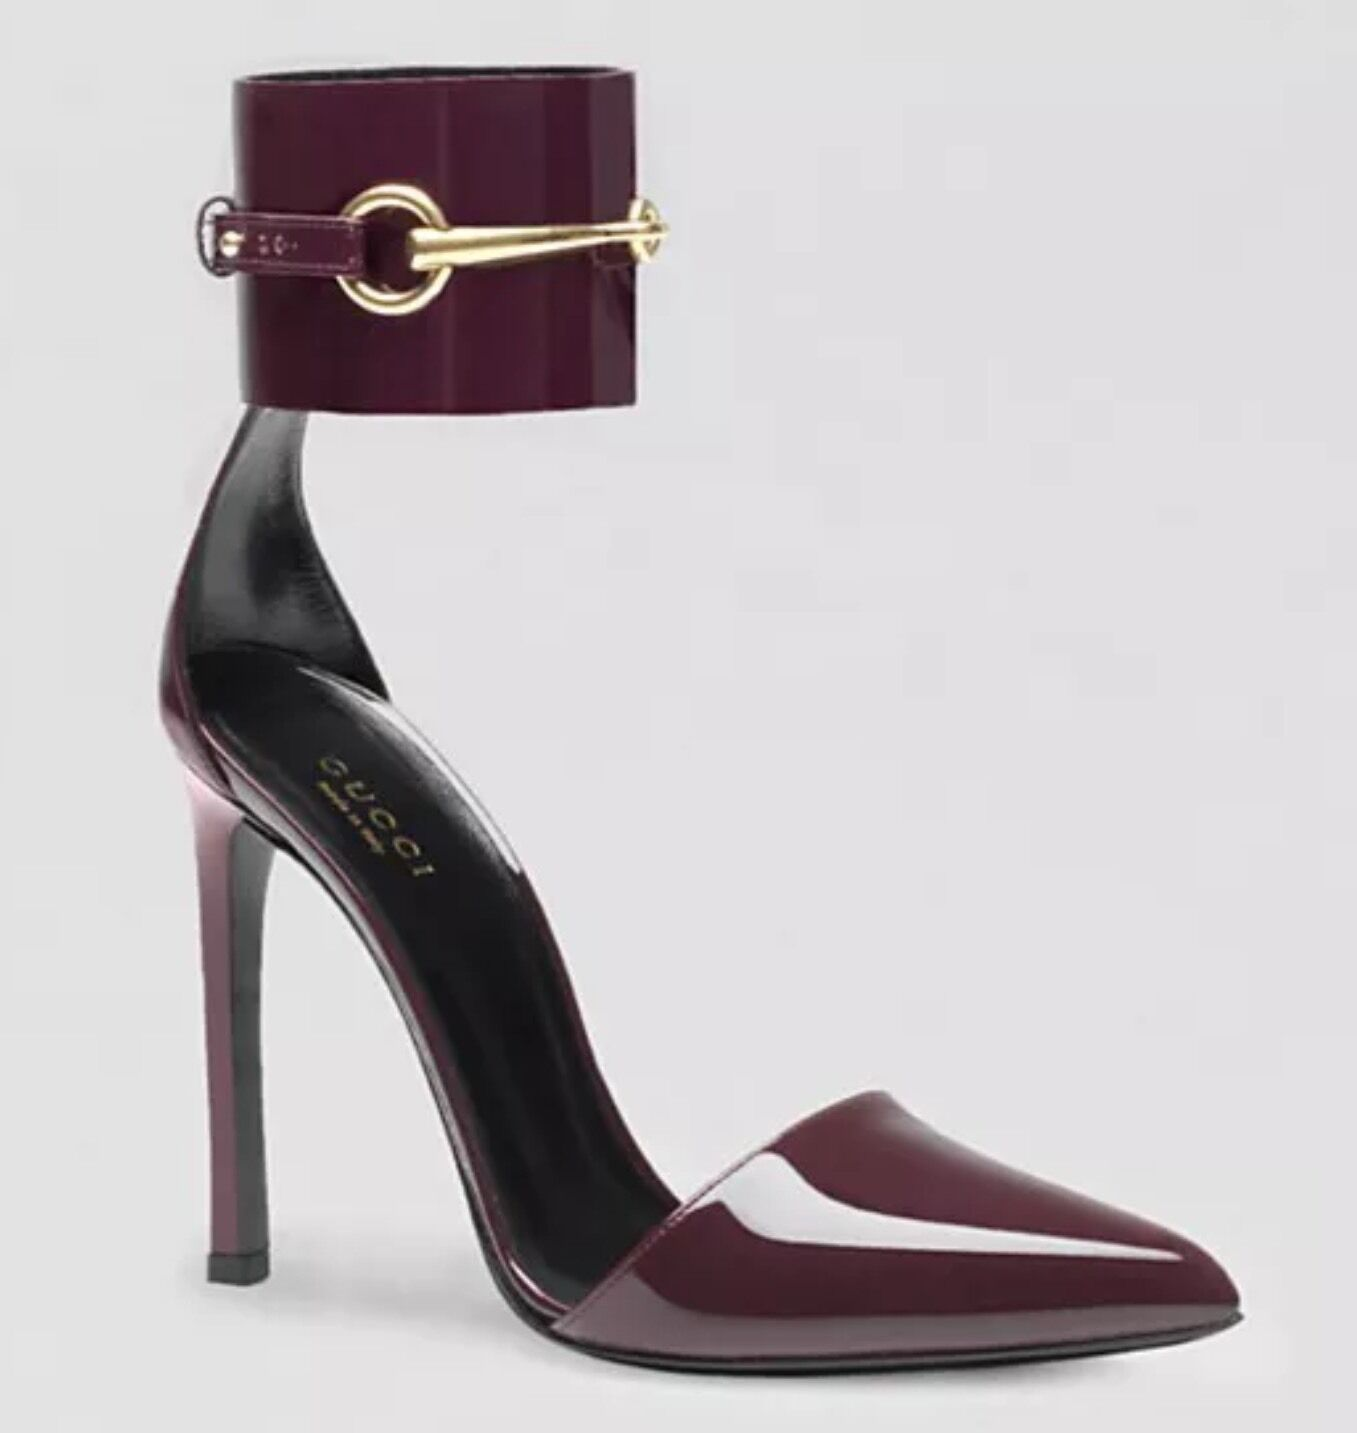 GUCCI SHOES URSULA BURGUNDY ANKLE STRAP LEATHER HORSEBIT CLOSED TOE 37.5